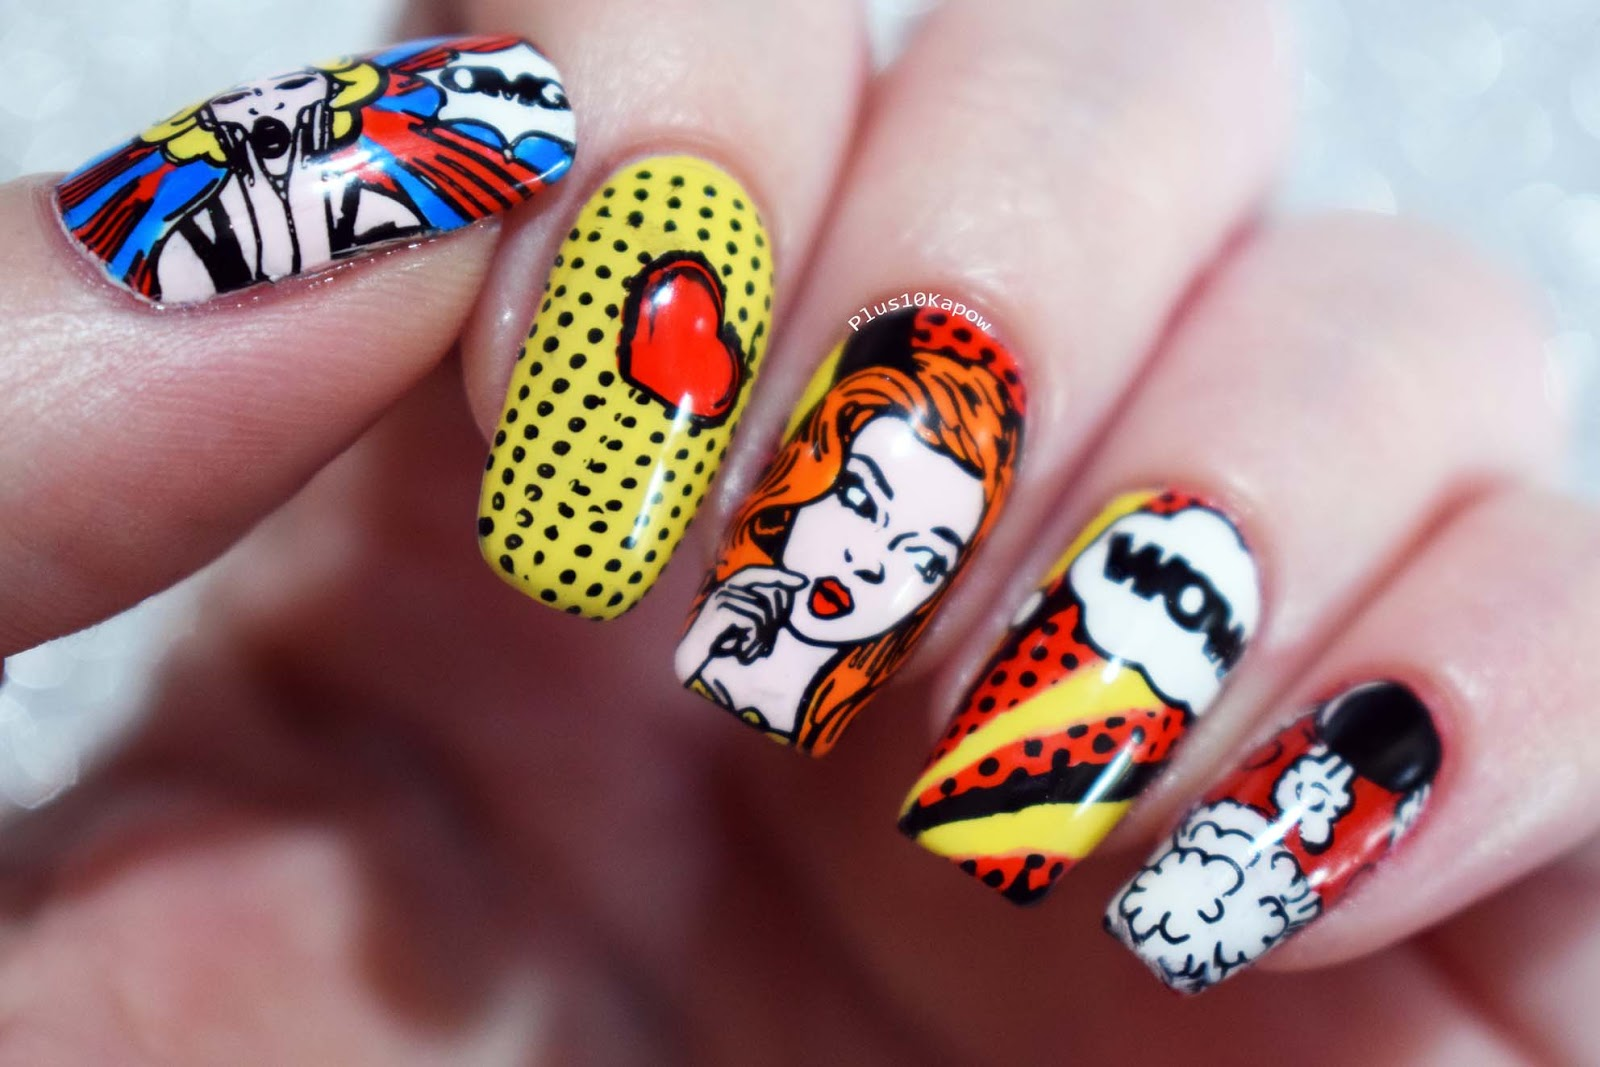 Plus10kapow Pop Art Nails